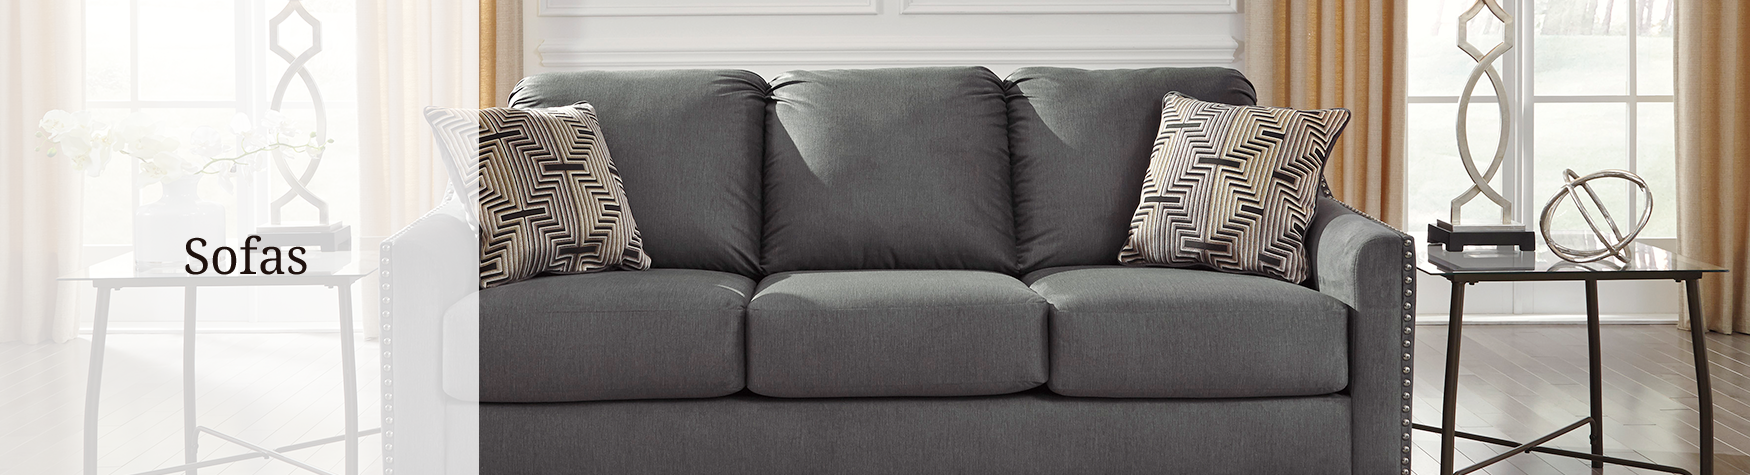 sofas-banner.png